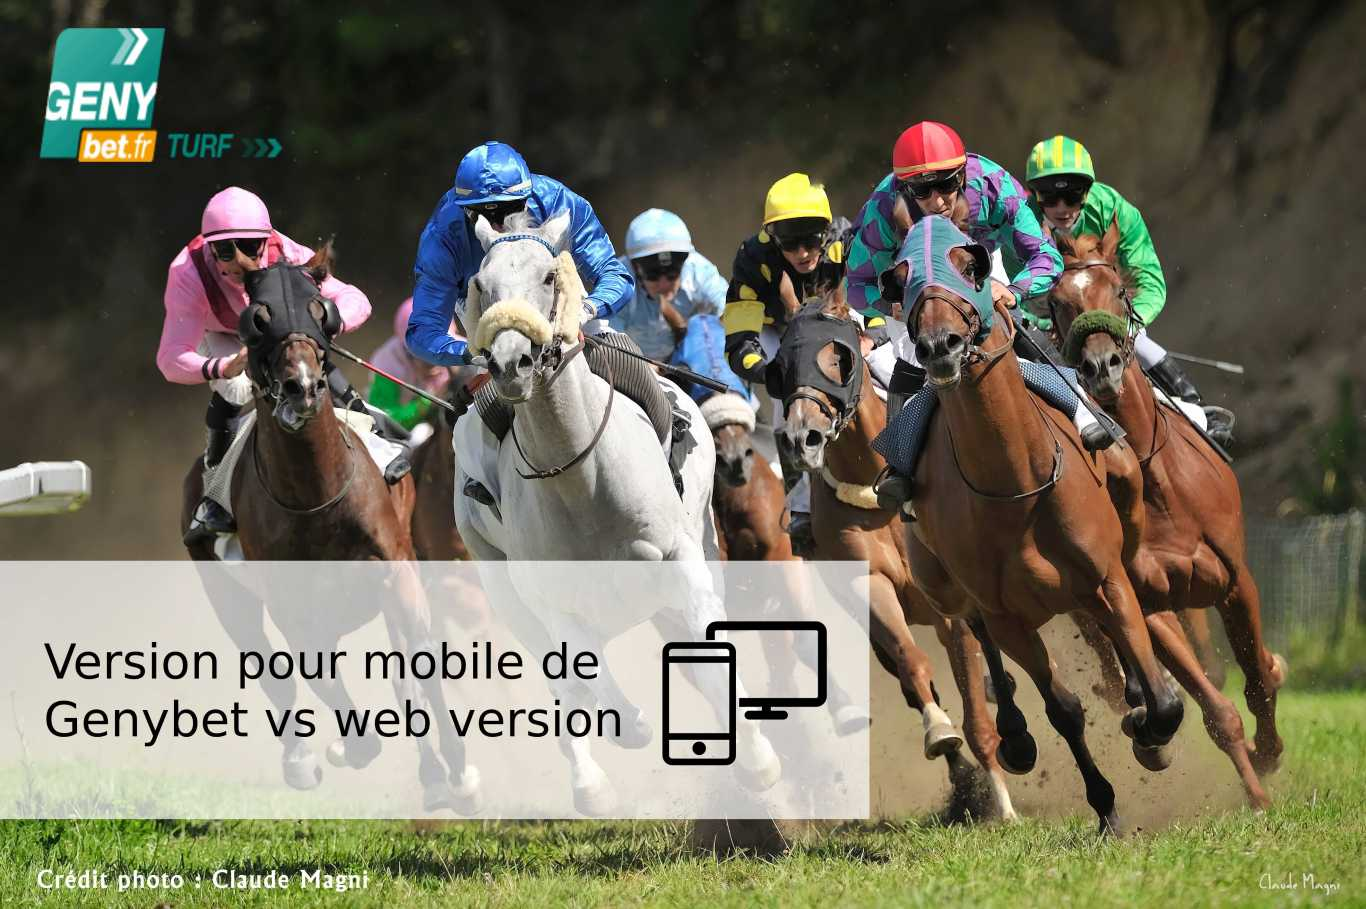 Version pour mobile de Genybet vs web version